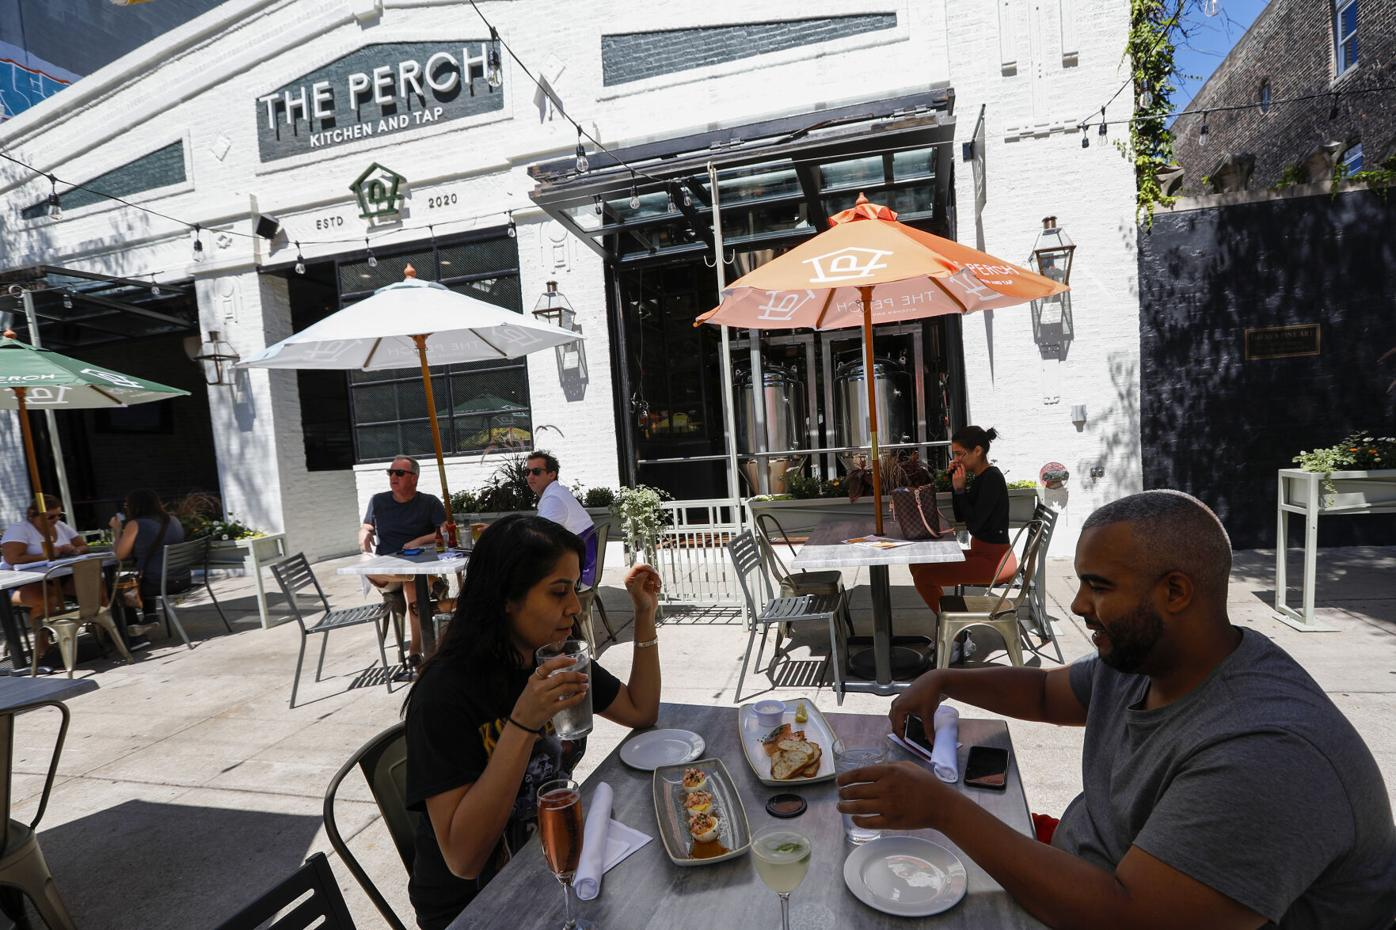 The Perch Kitchen and Tap patio